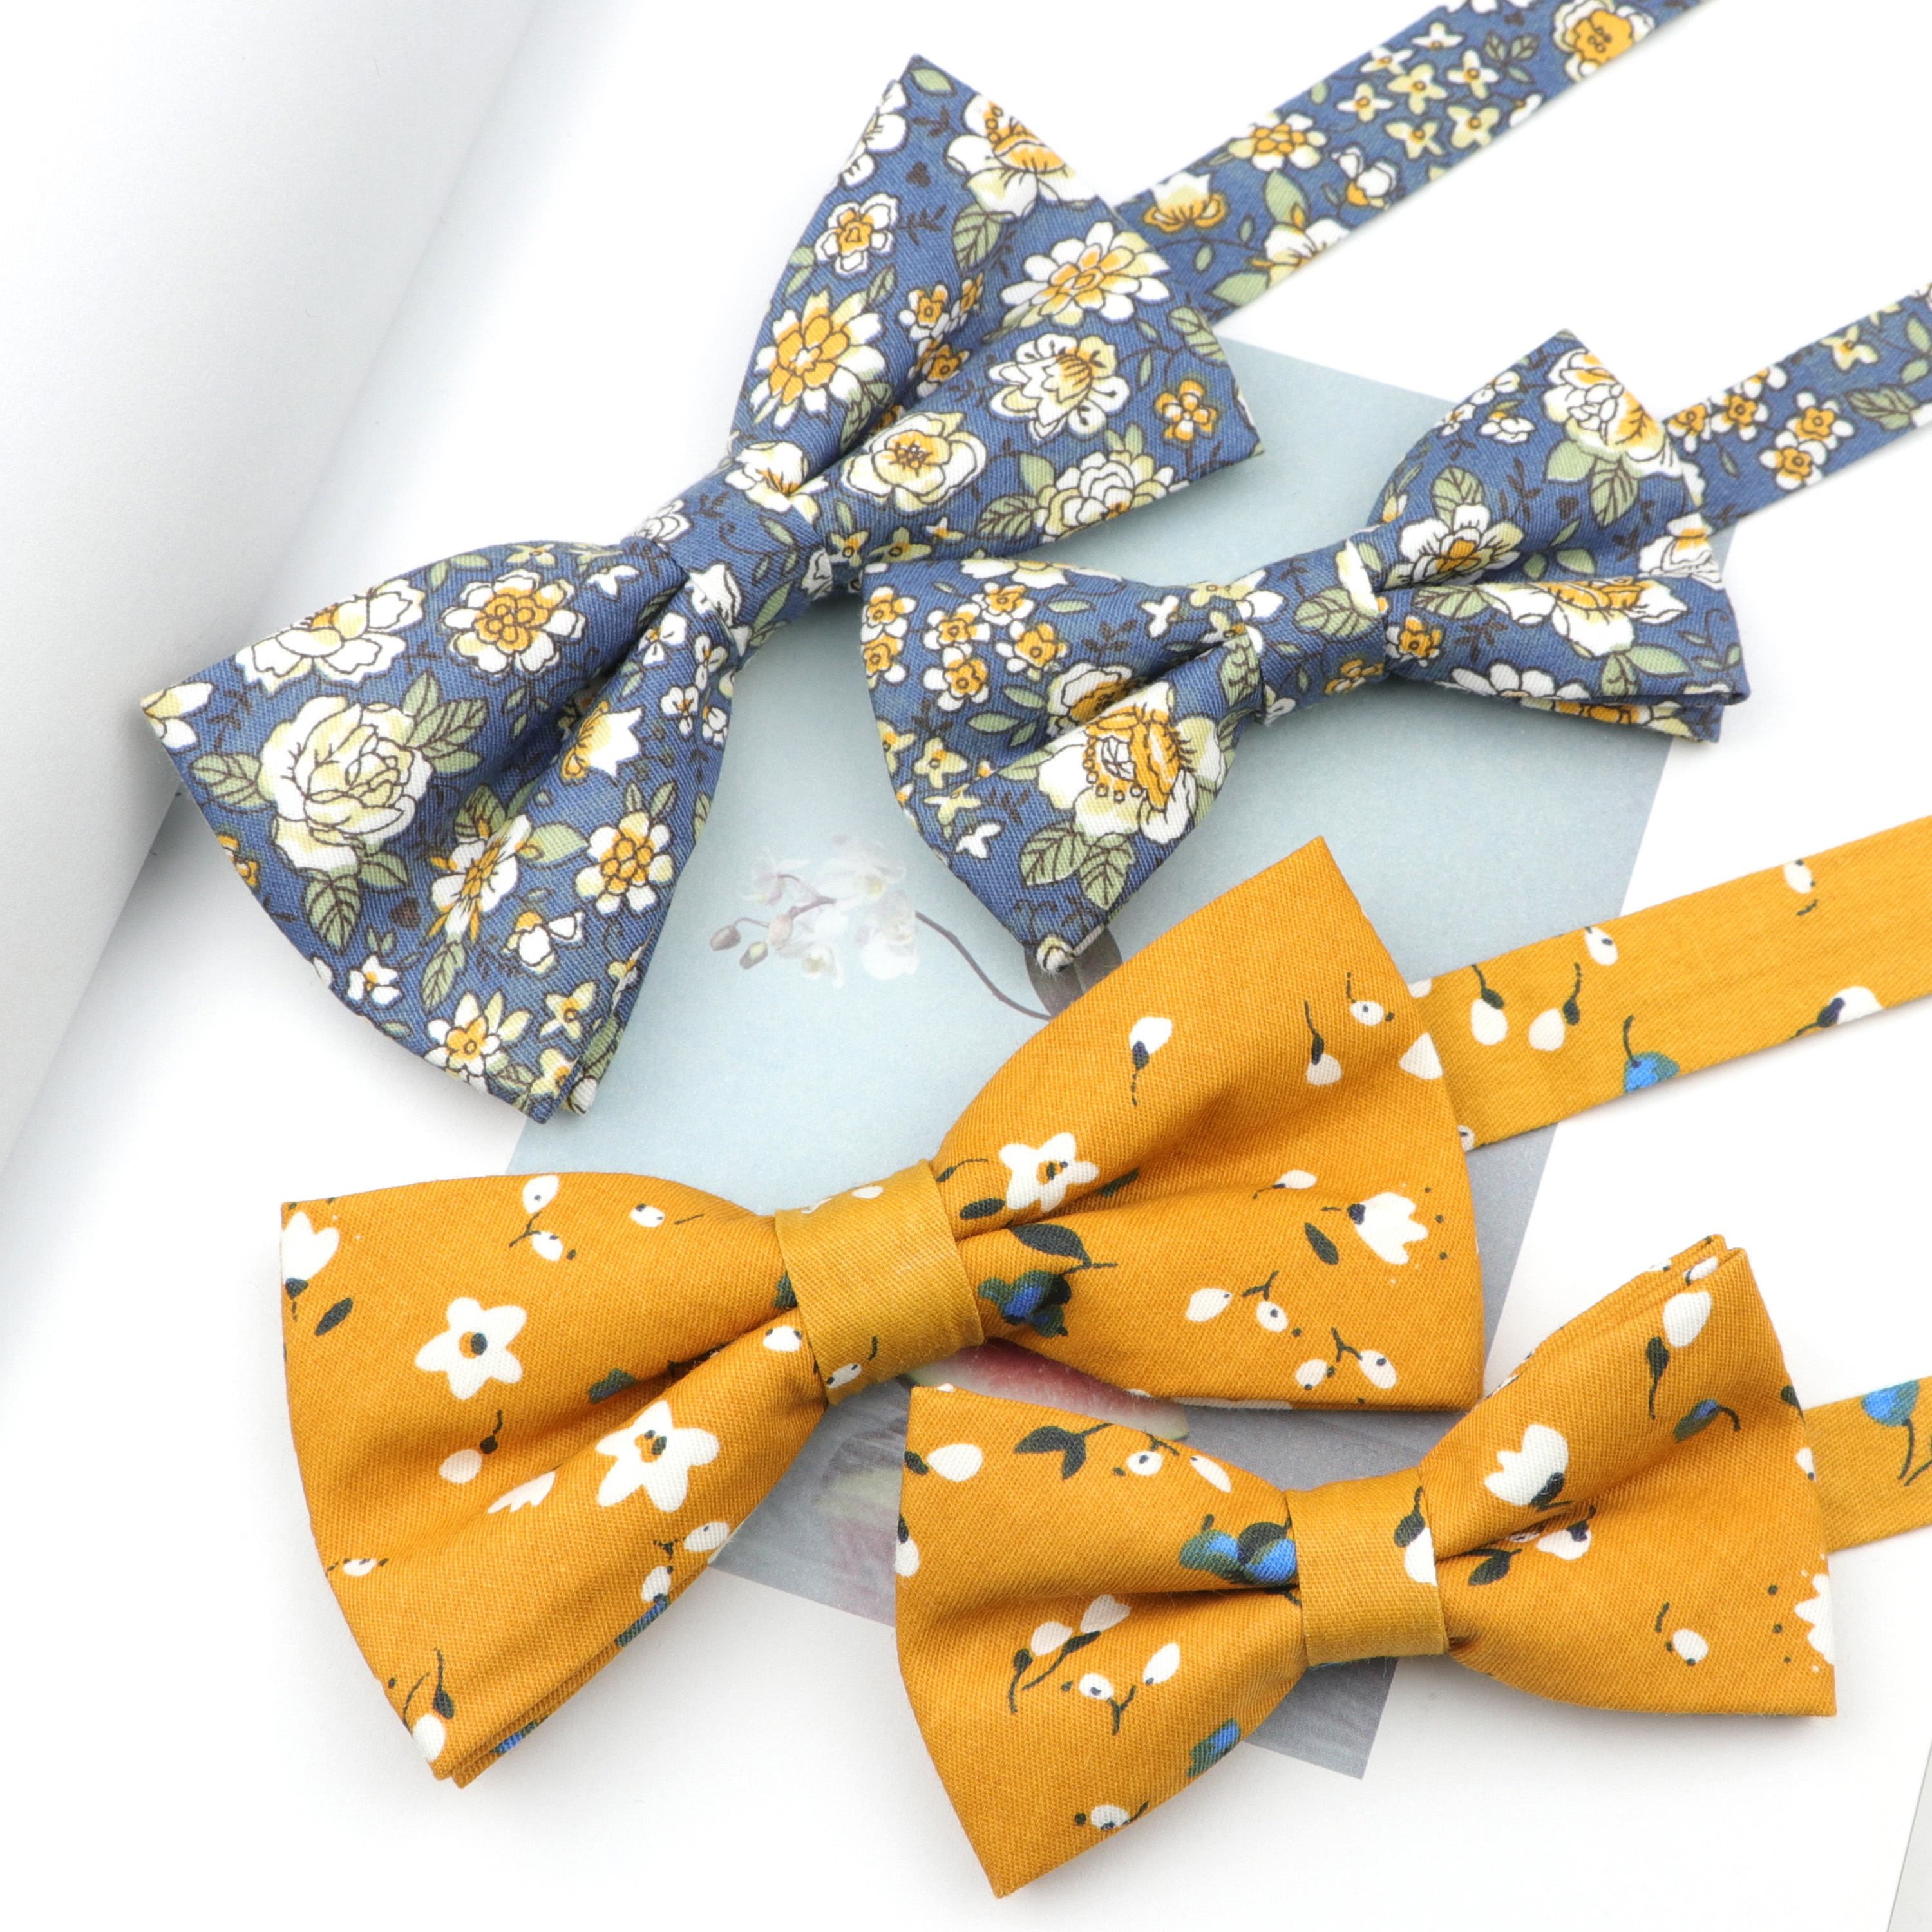 Cartoon Vintage Flower Printed Adjustable Bowtie Sets Cute Cotton Kids Adults Pet Men Floral Butterfly Wedding Party Accessory